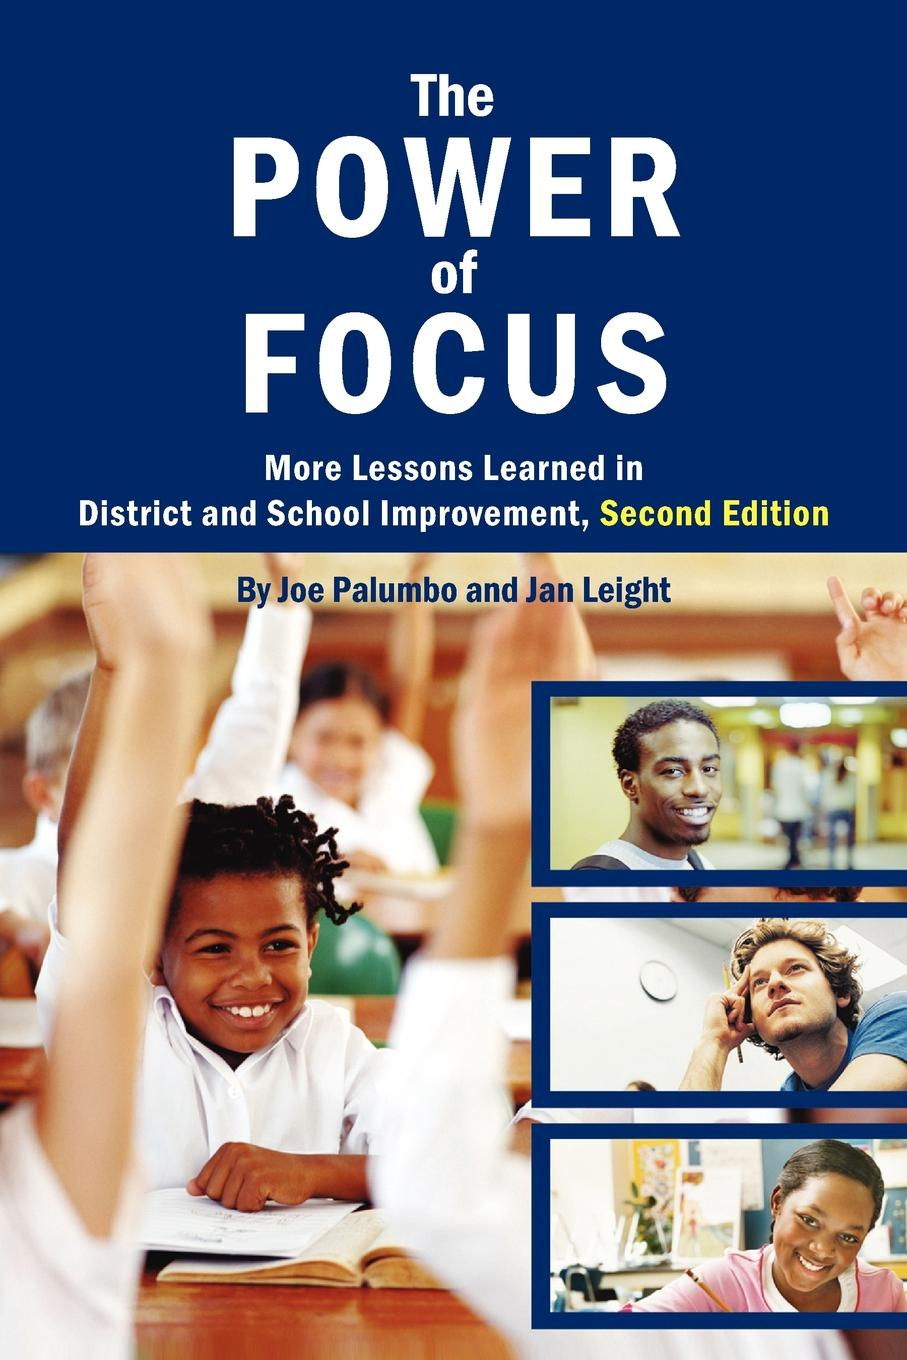 Joe Palumbo Leight, Joe Palumbo The Power of Focus. More Lessons Learned in District and School Improvement, 2nd Edition economic and political impacts of business improvement district